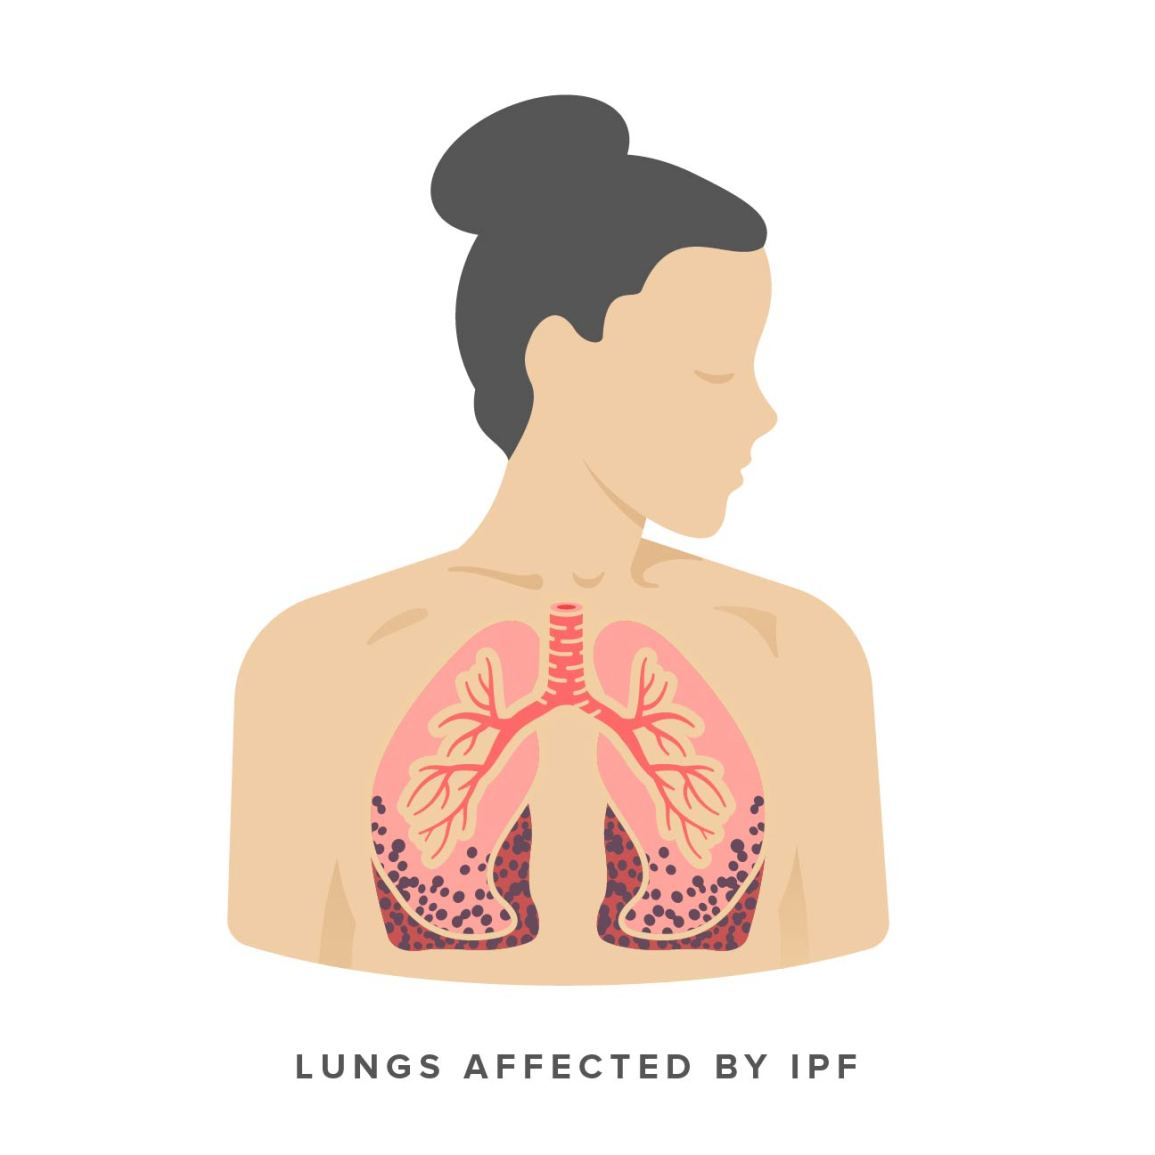 lungs affected by IPF